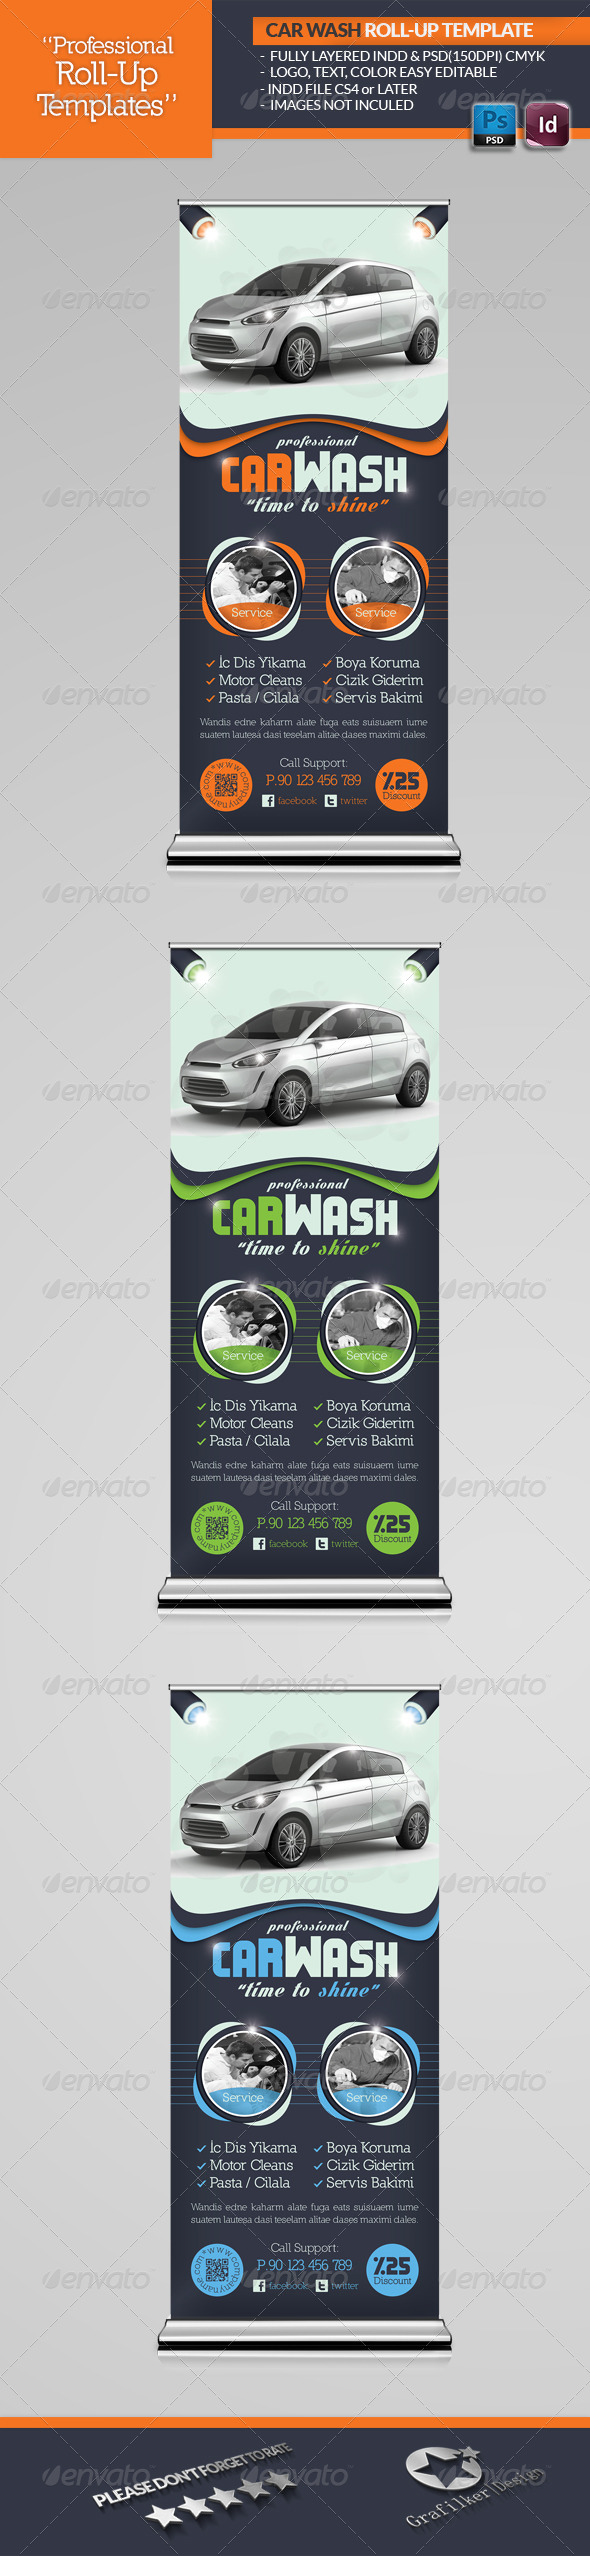 GraphicRiver Car Wash Roll-Up Template 4632529